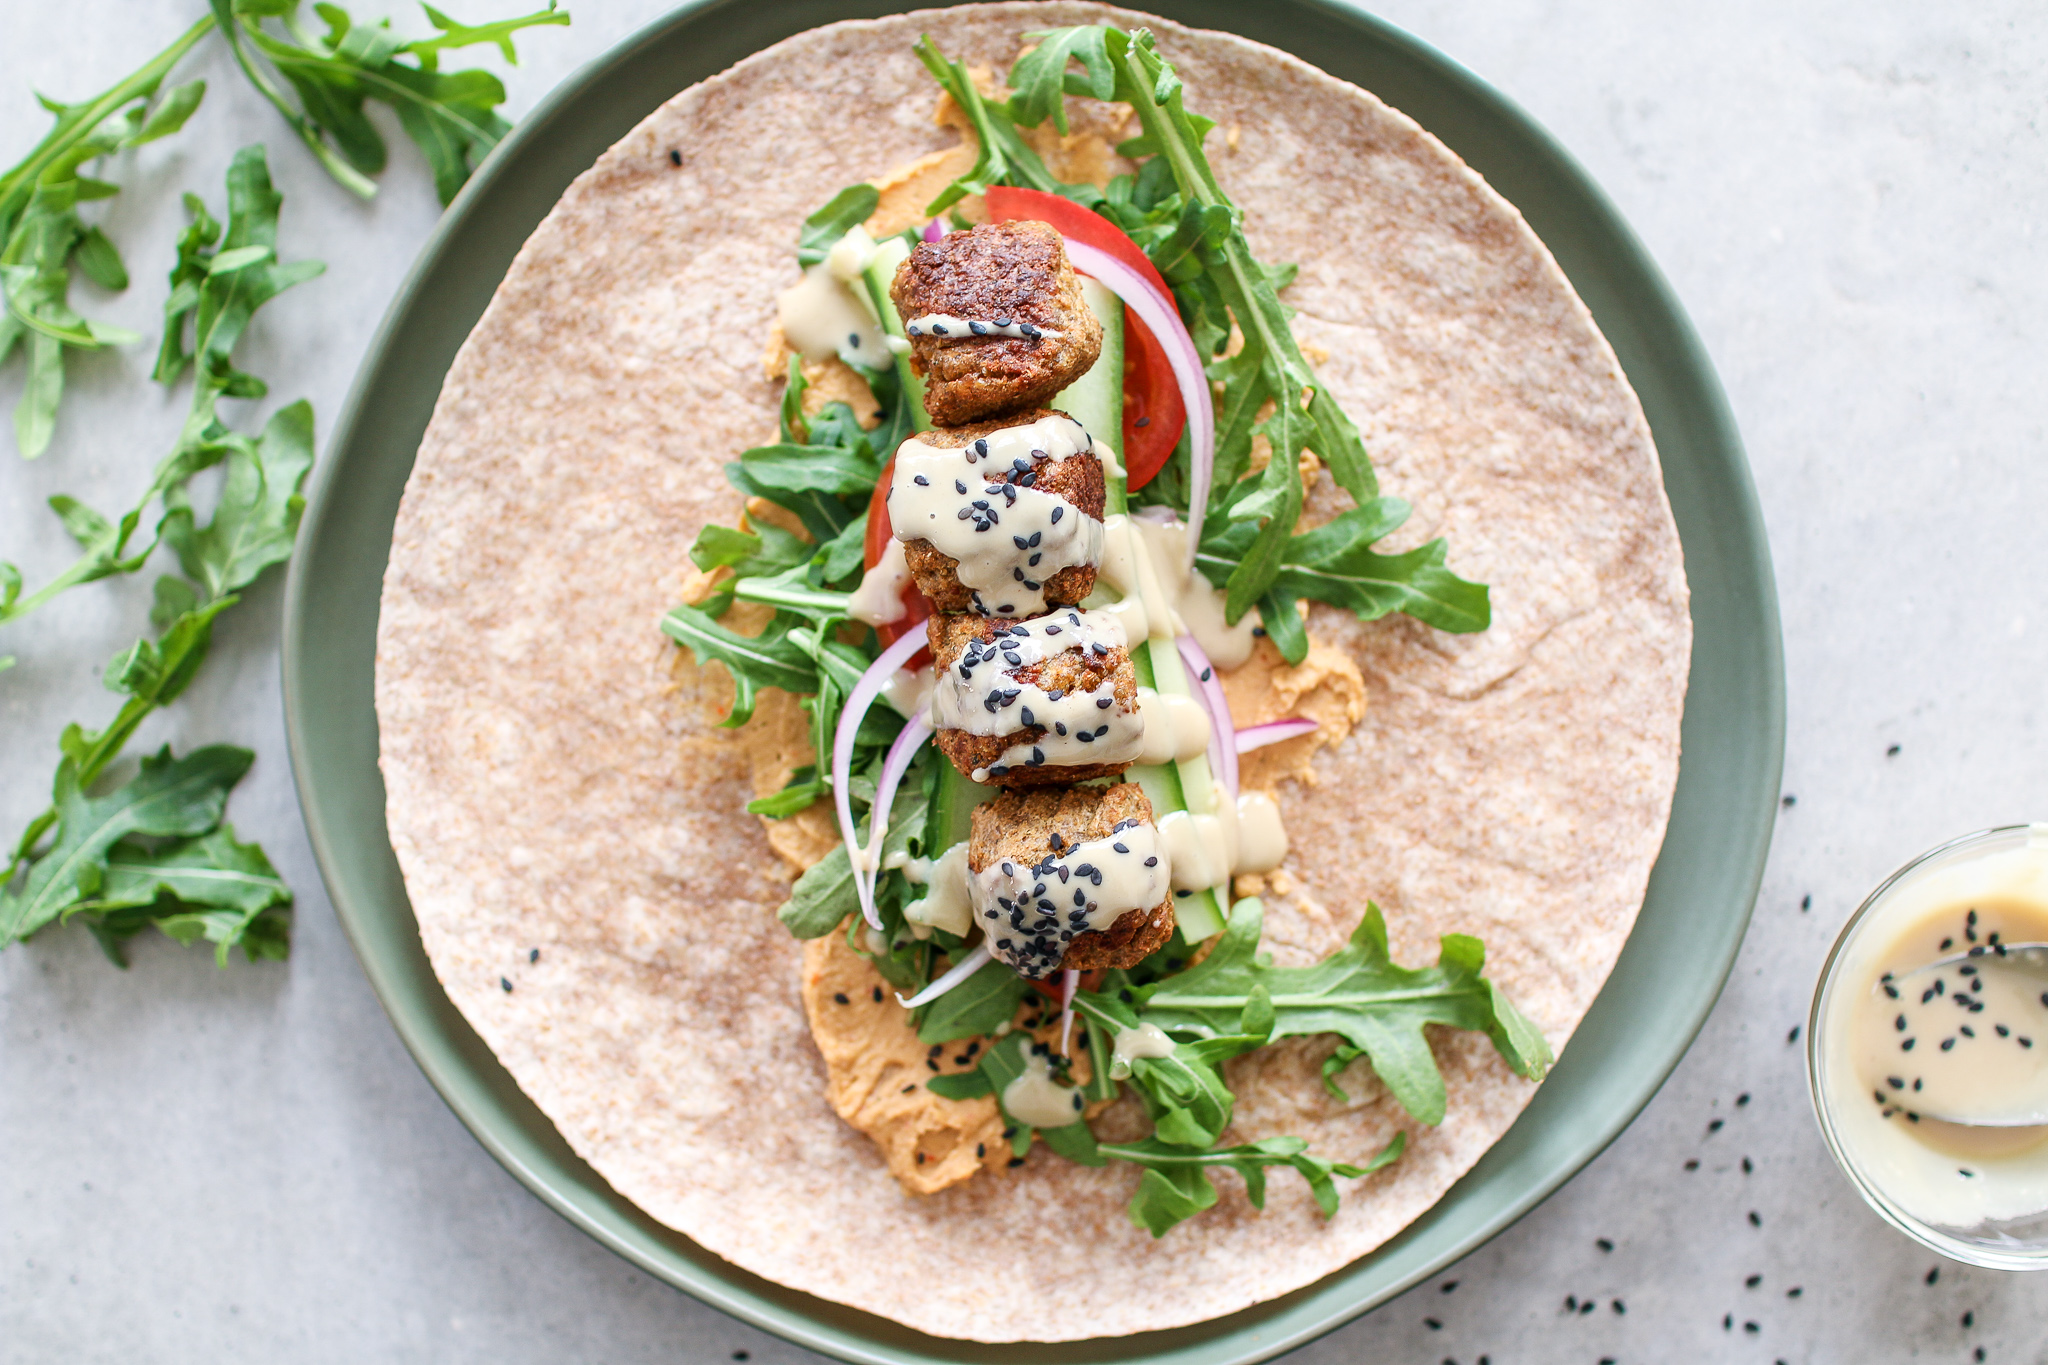 Savoury falafel, wrapped in a large tortilla smothered in red pepper hummus, topped with peppery arugula, crunchy cucumbers, tomatoes, onions and drizzled in creamy tahini.